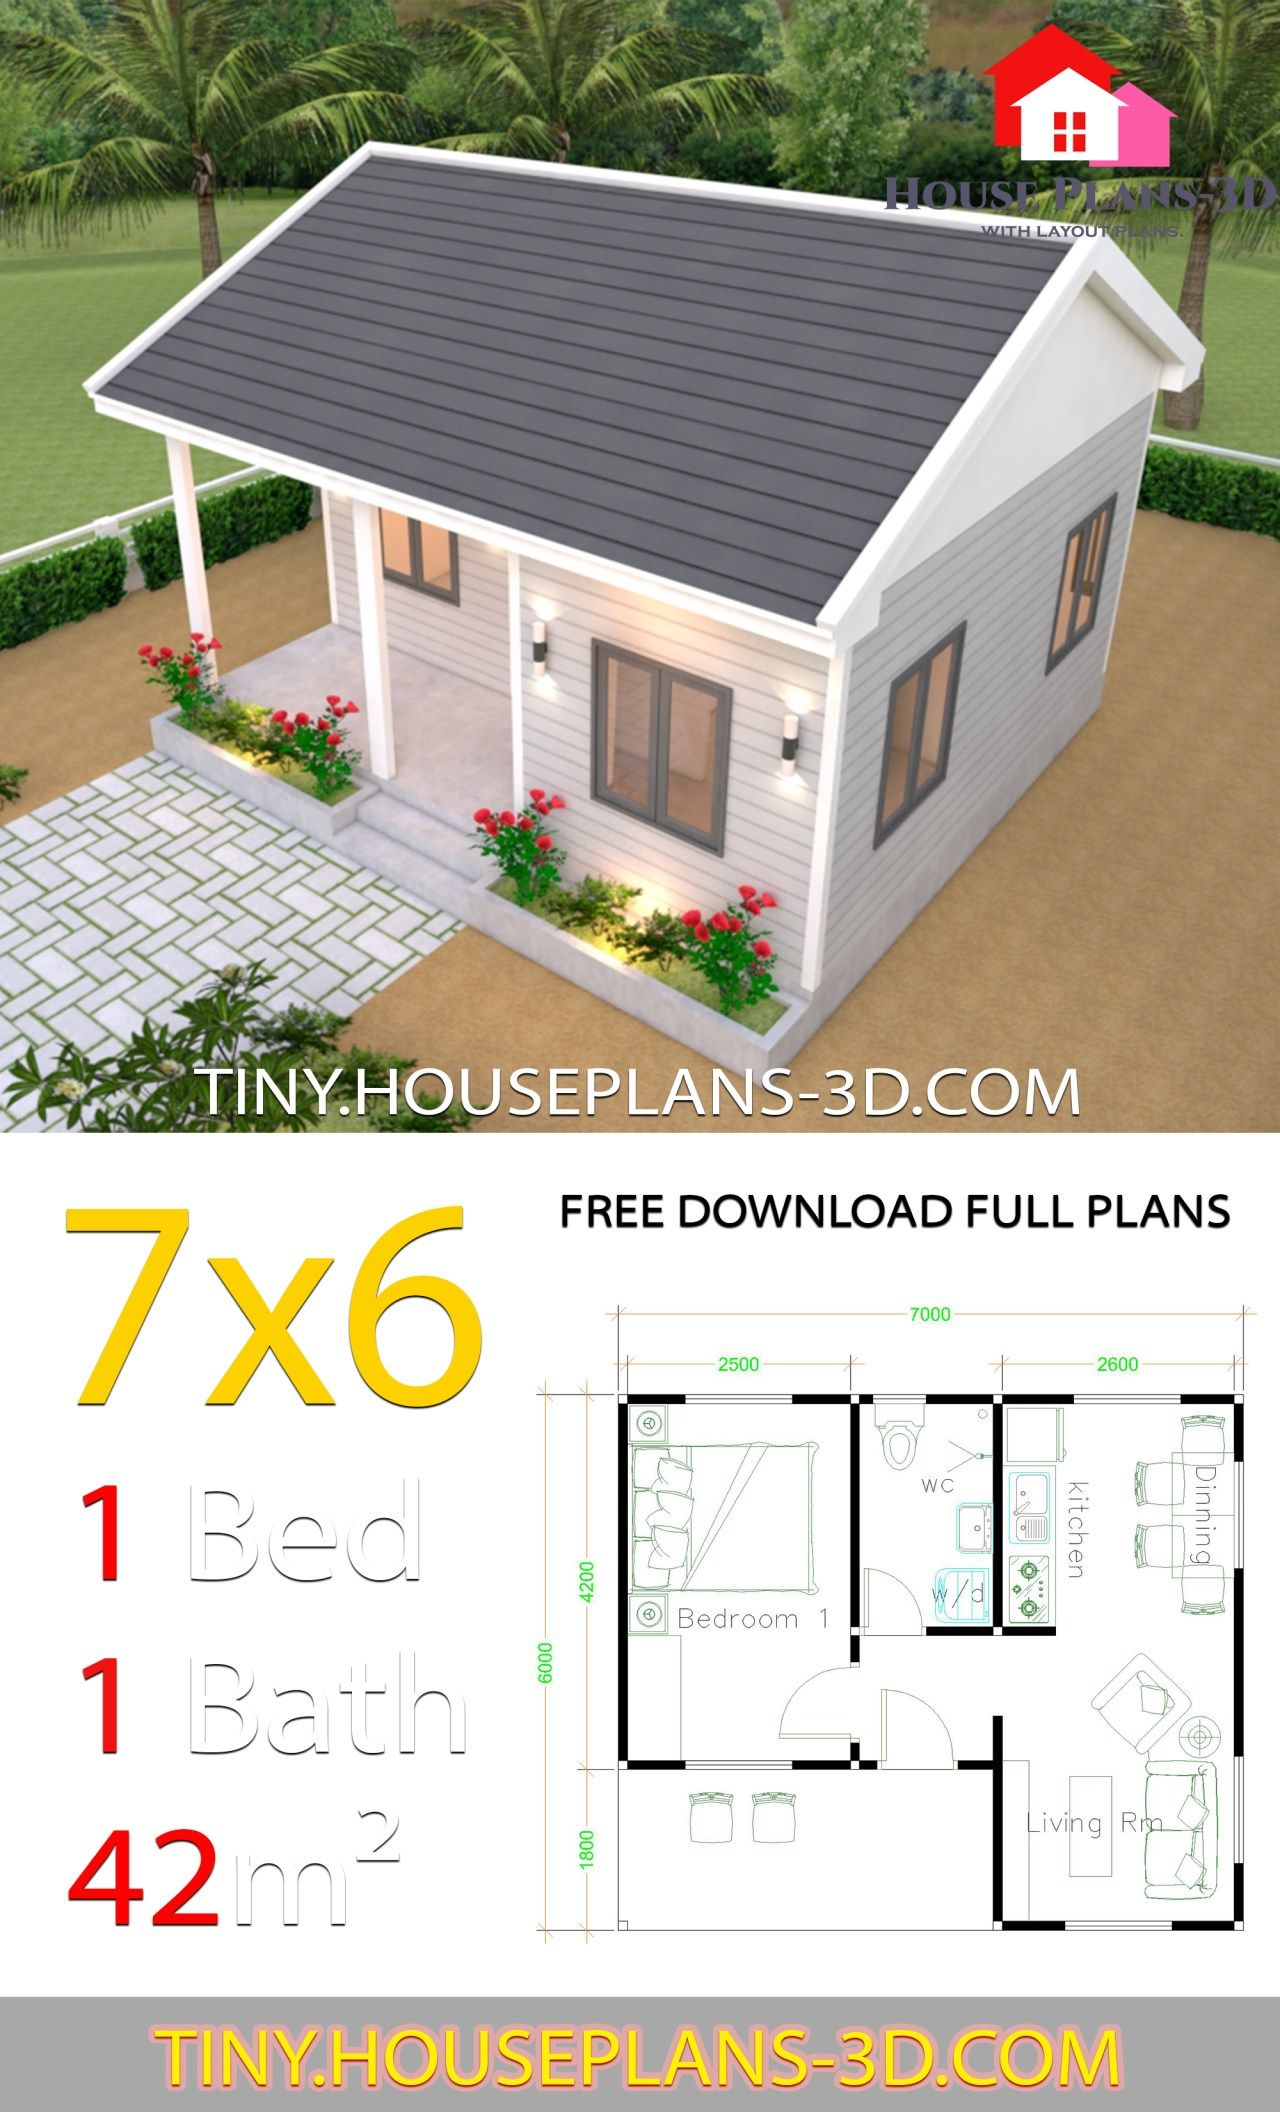 Tiny House Plans 7x6 With One Bedroom Gable Roof Tiny House Plans One Bedroom House Tiny House Plans One Bedroom House Plans